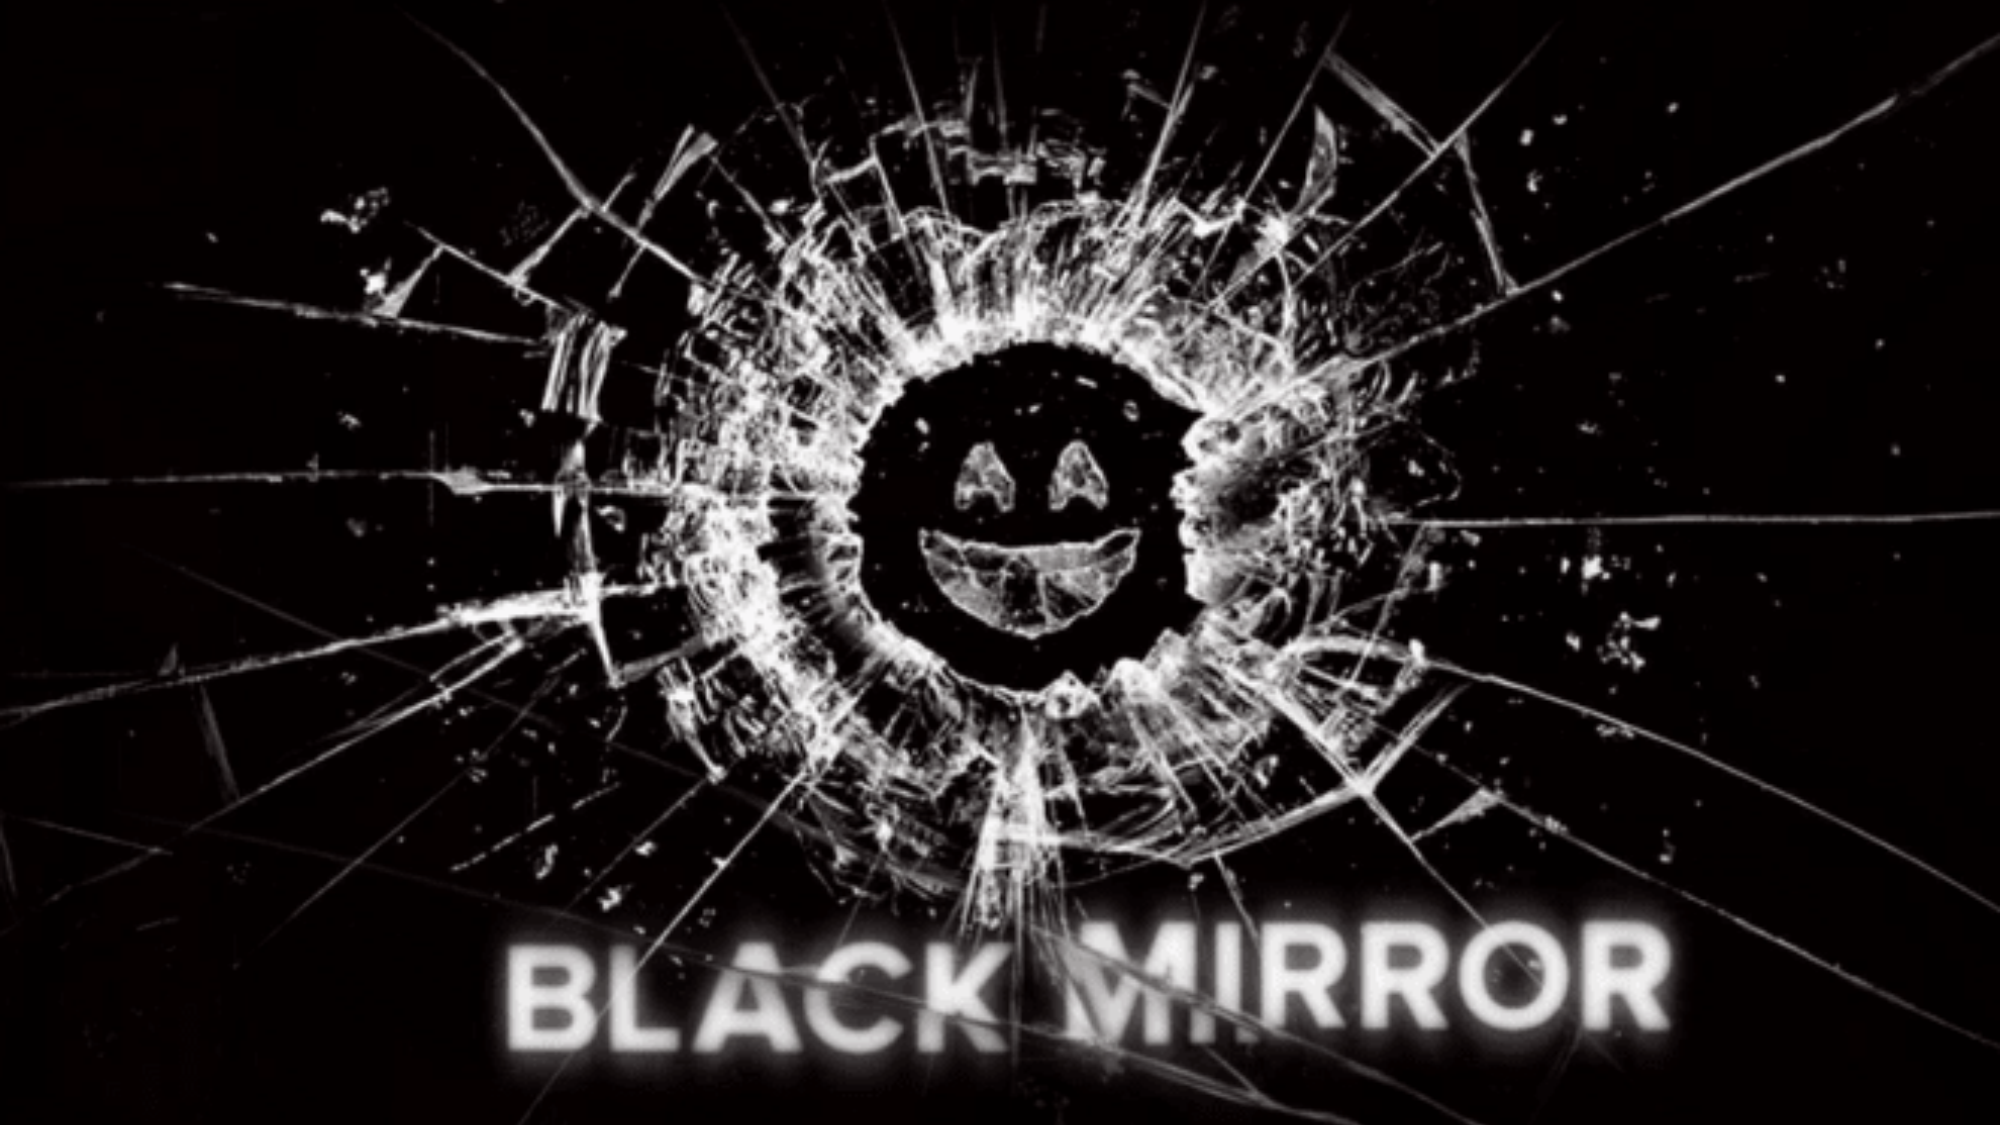 Black Mirror season 5 release date